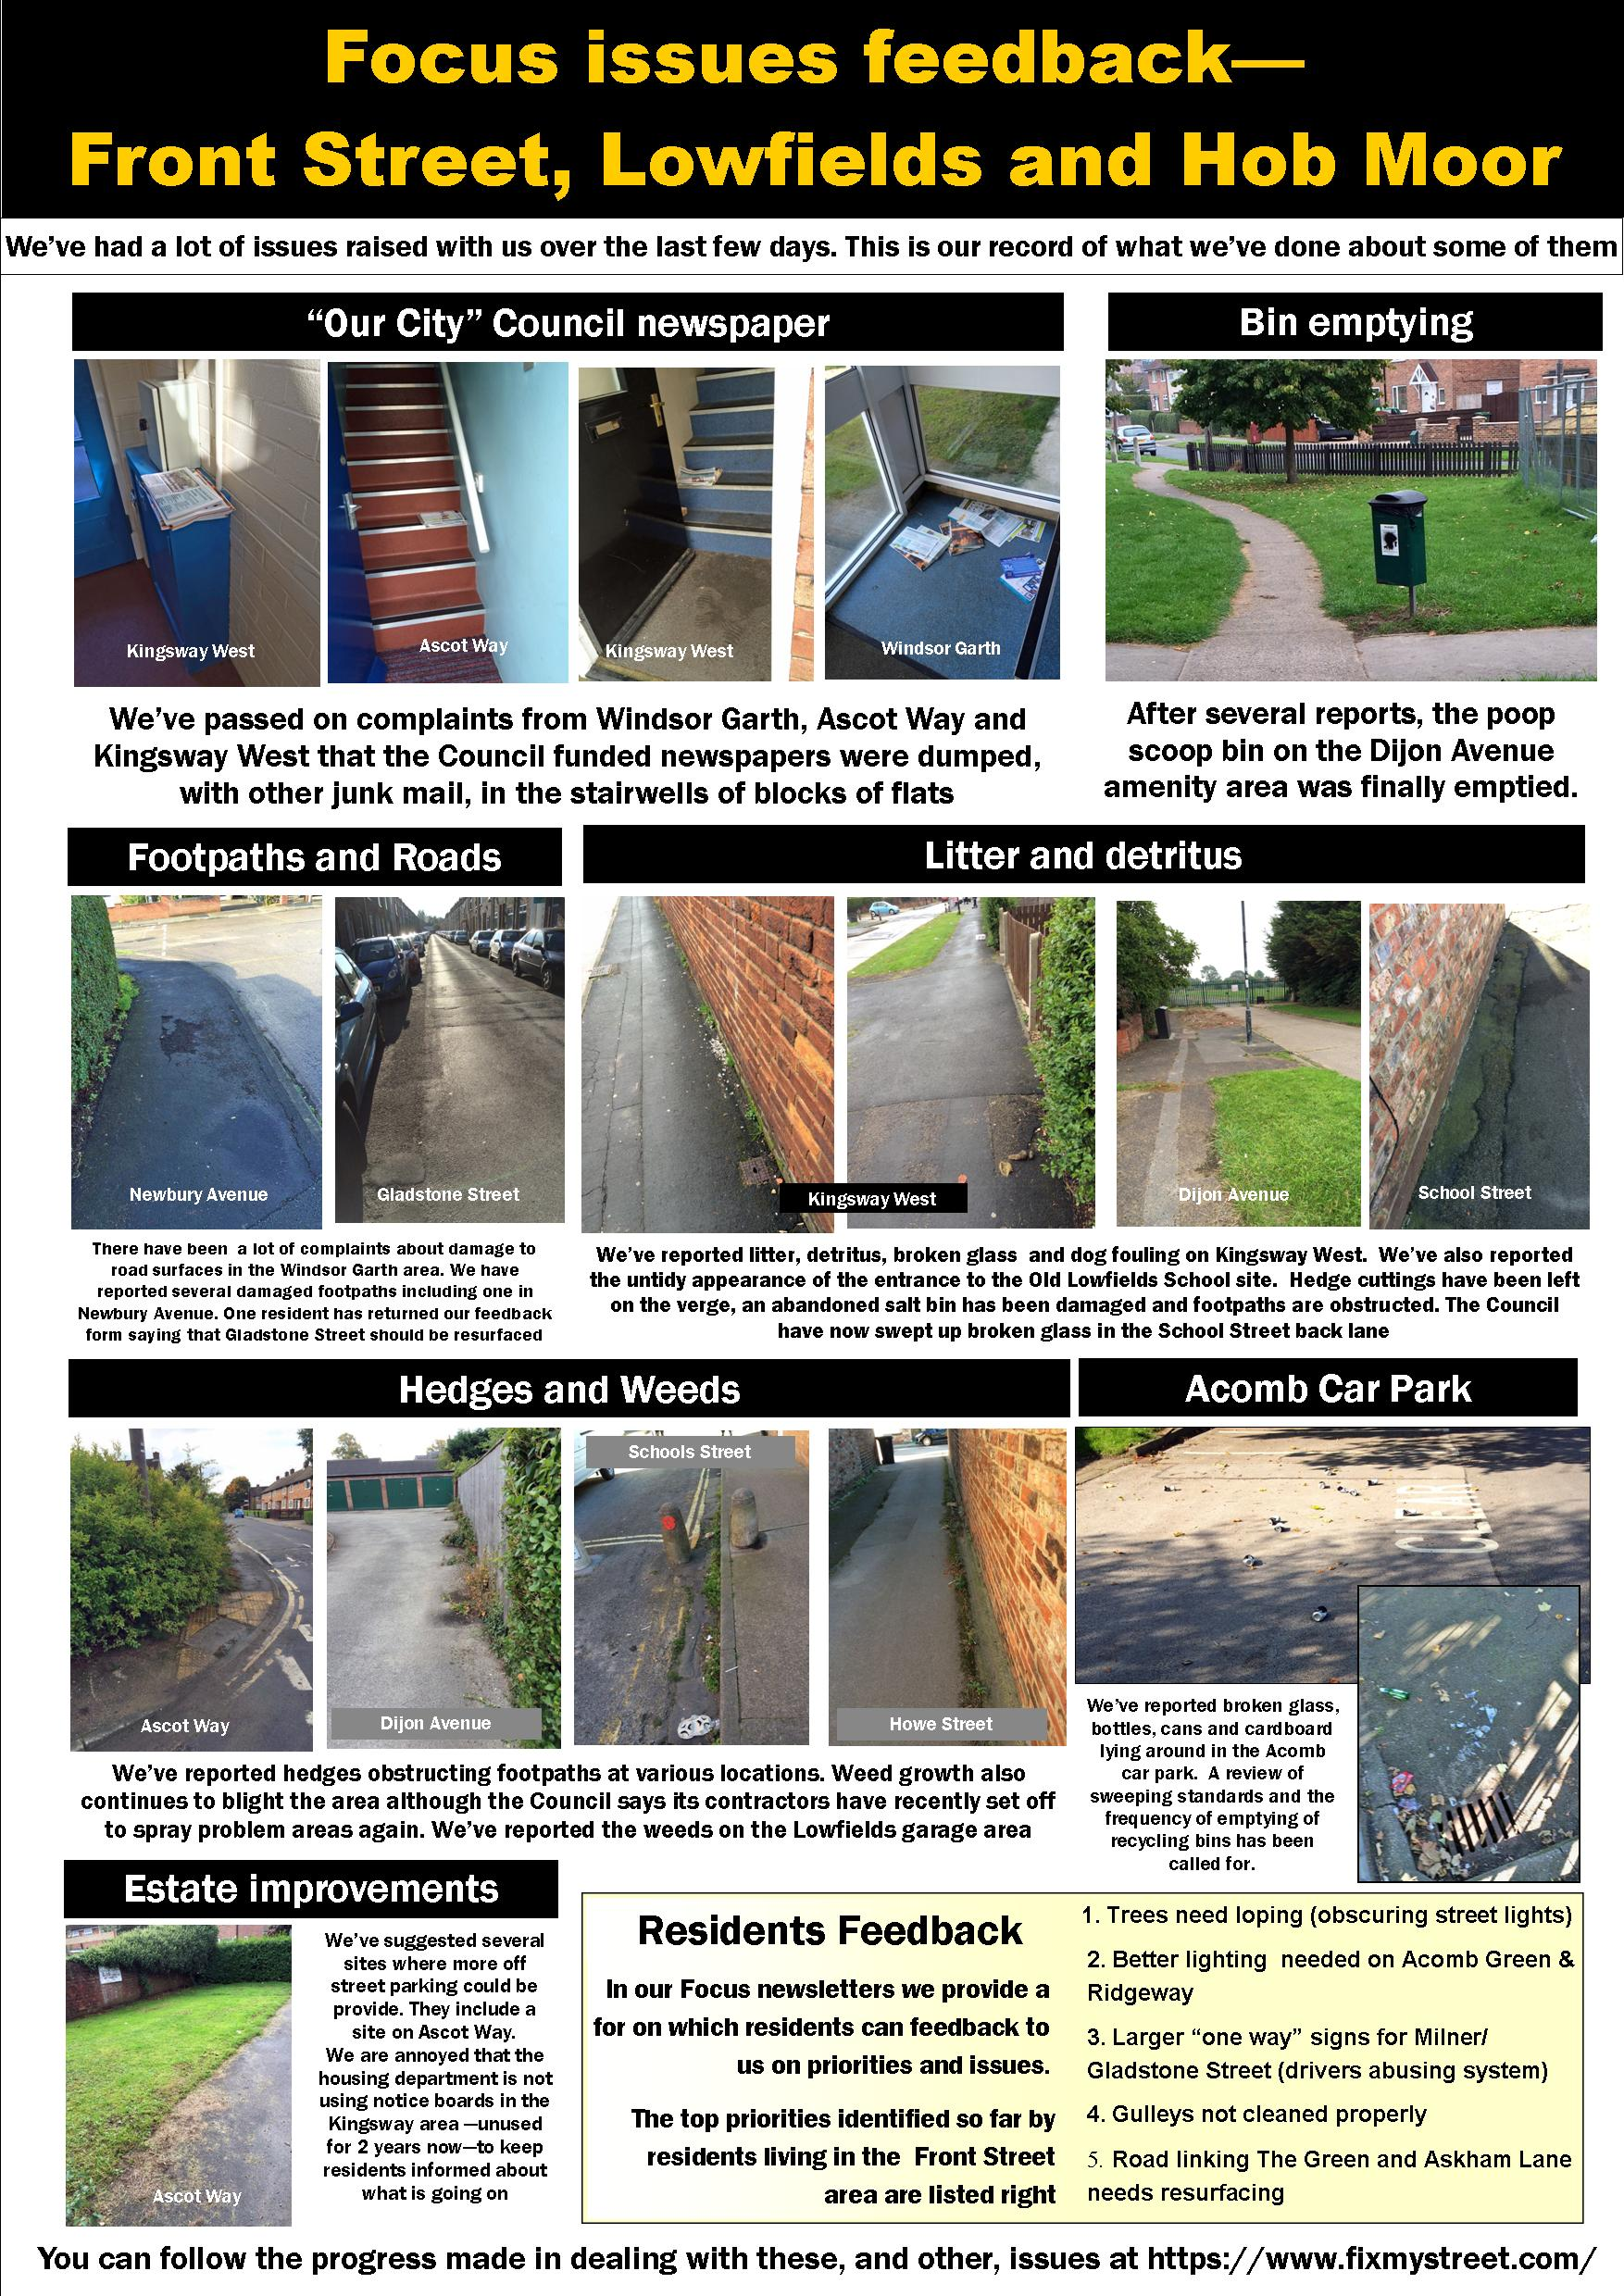 Focus Feedback Front Street, Lowfields and Hob Moor 6th Oct 2015